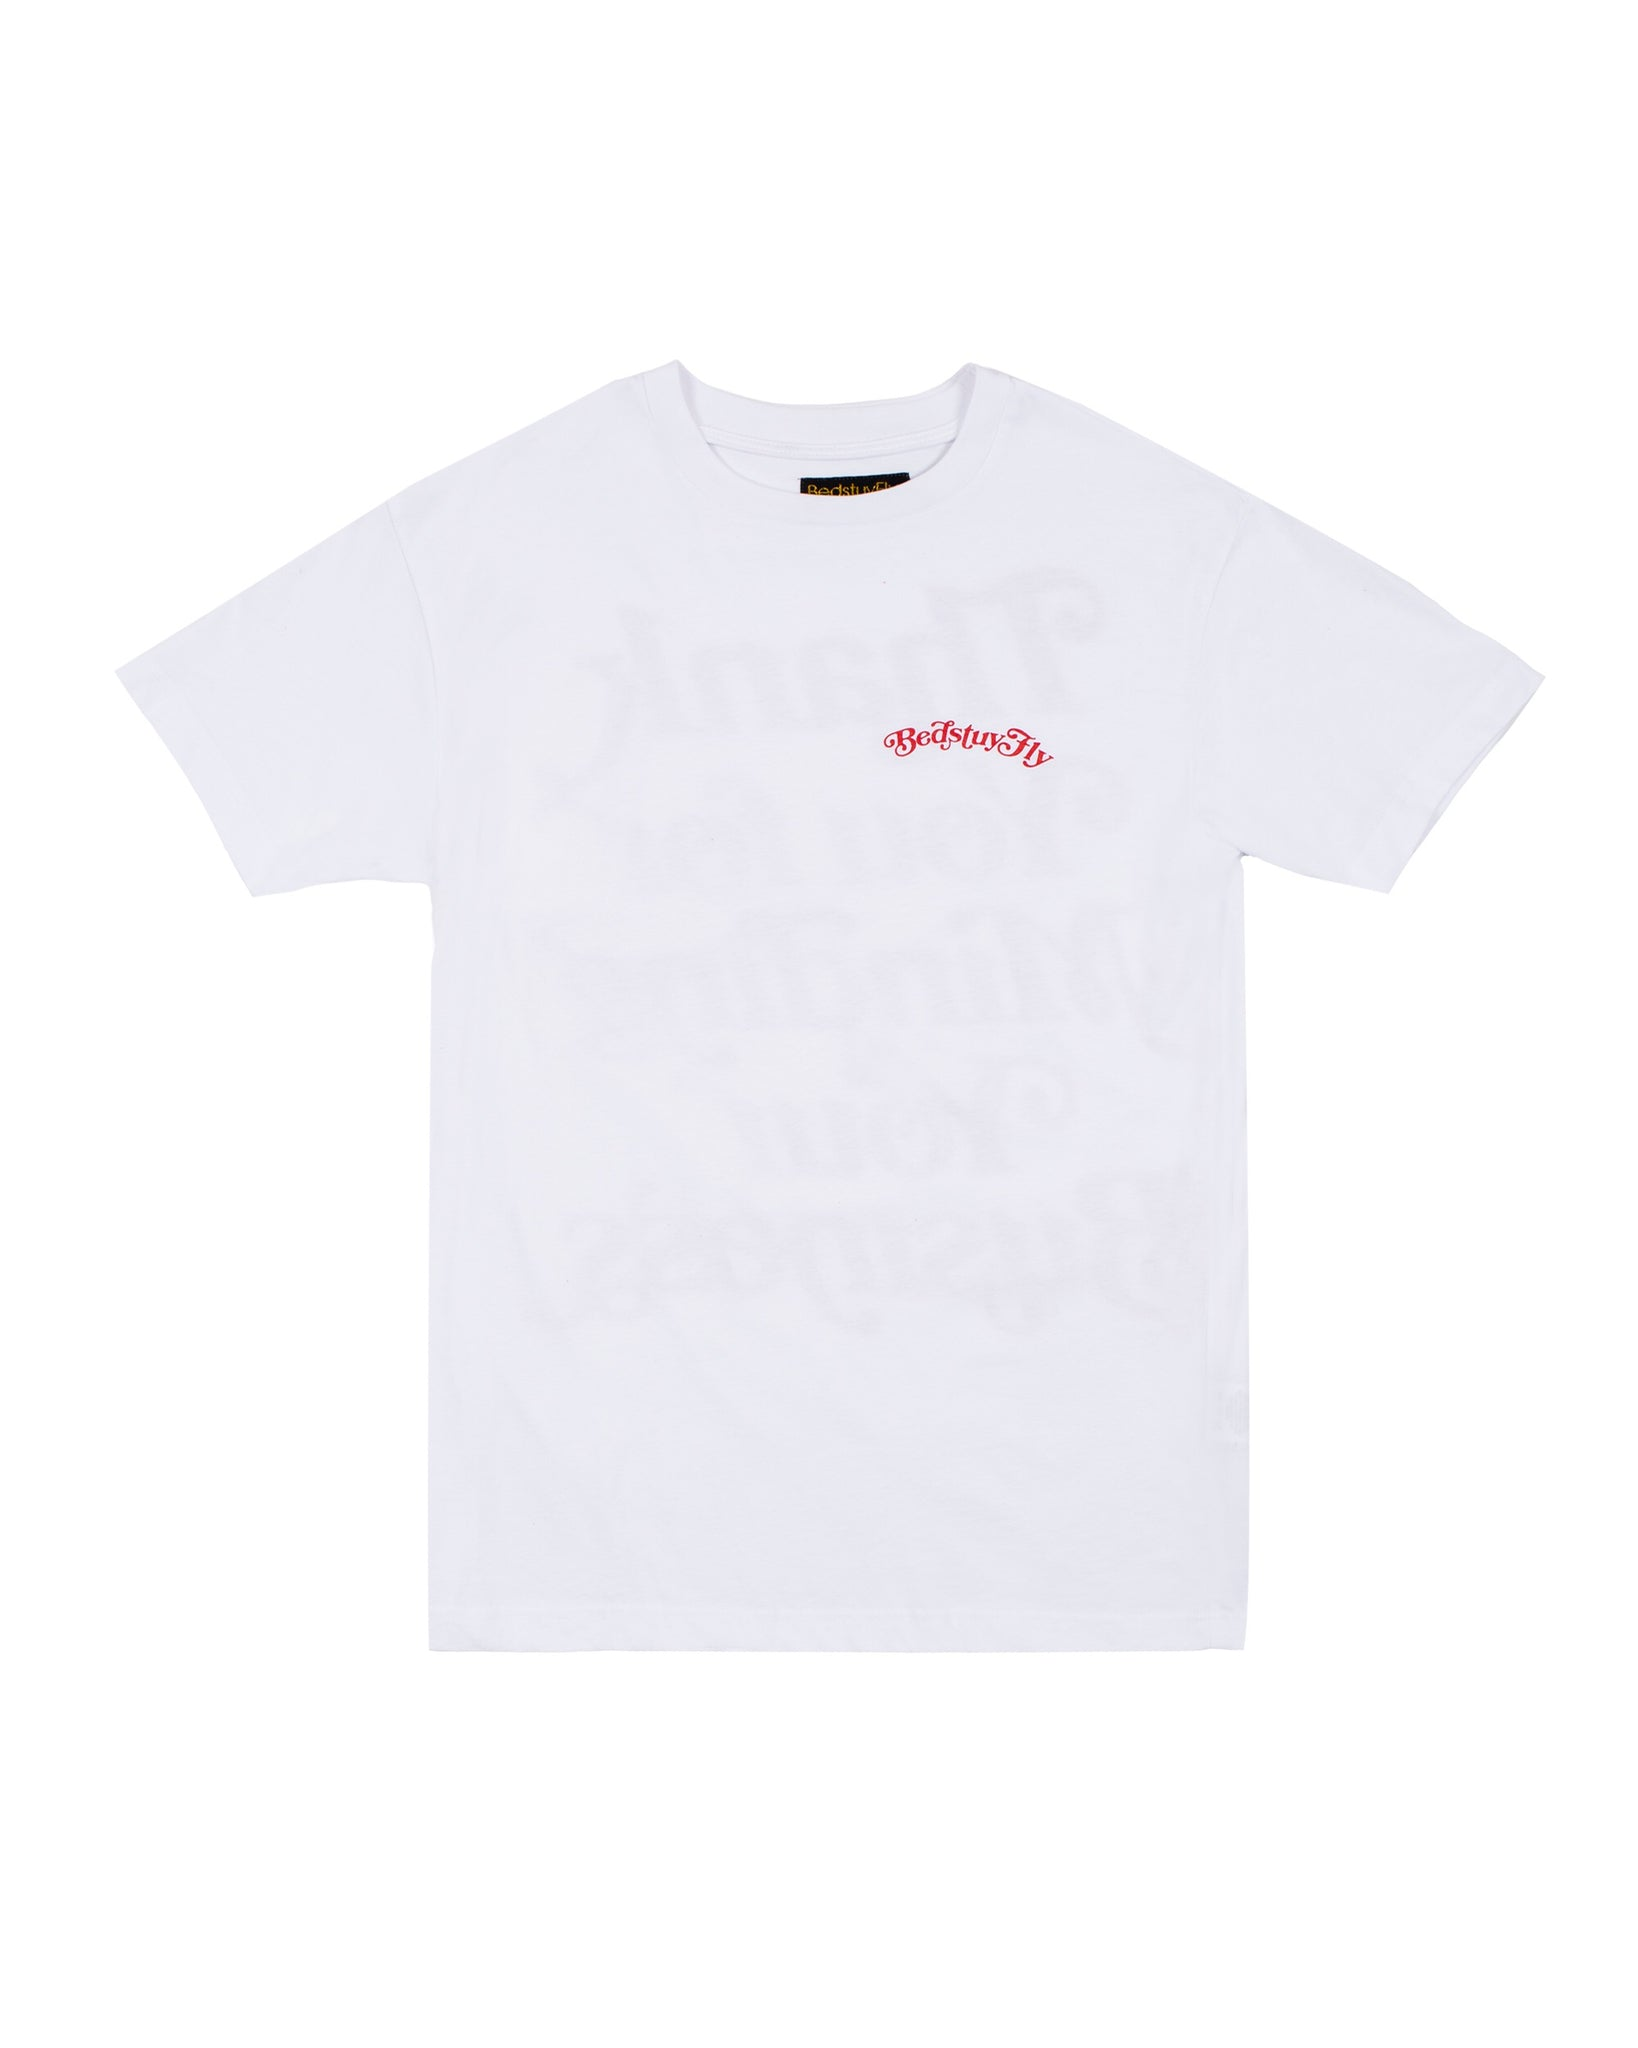 Mind Your Business (White/Red)